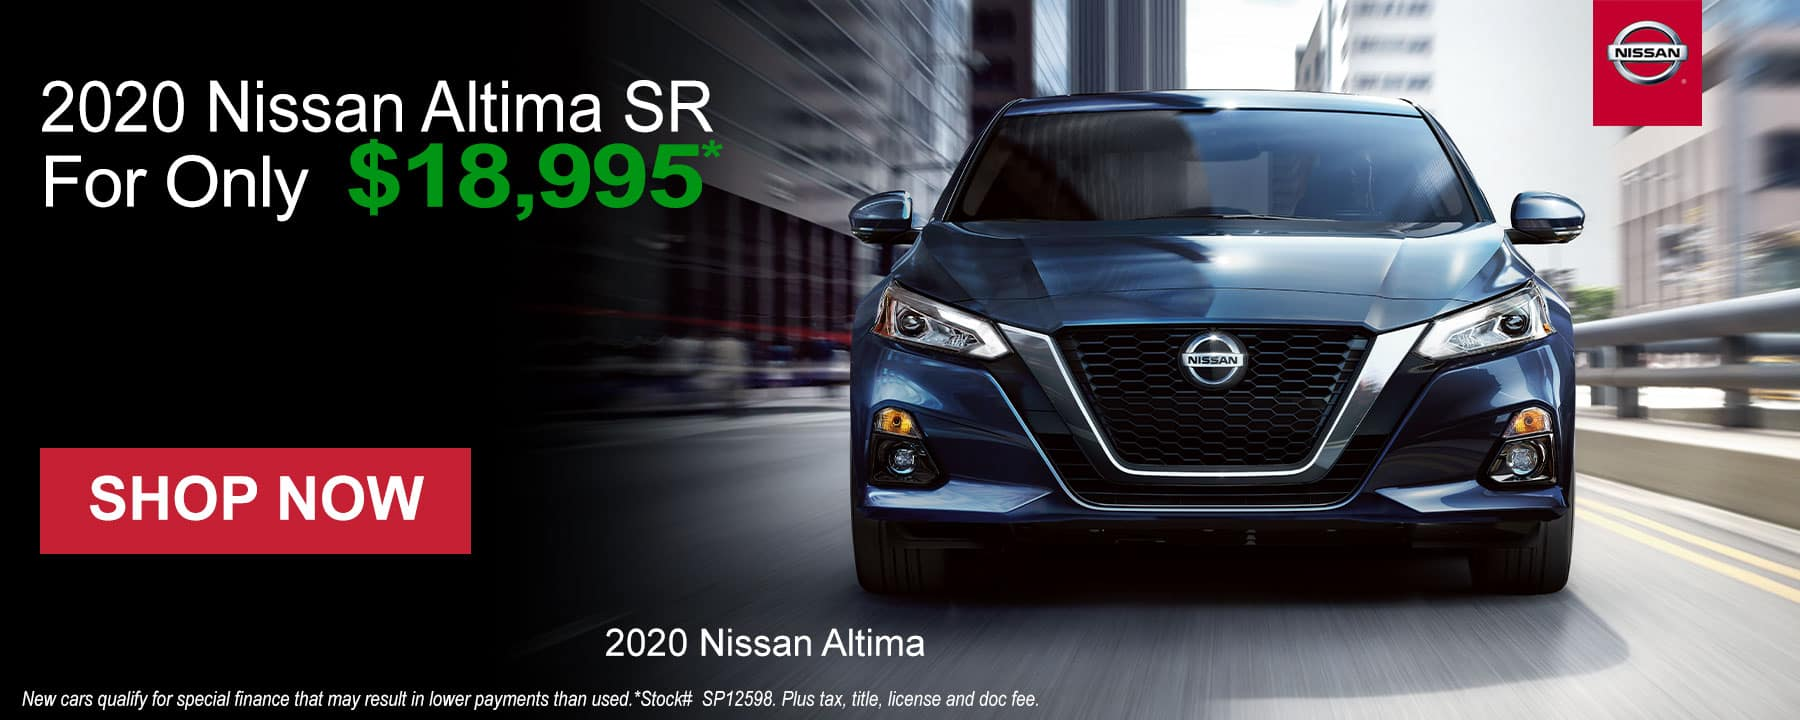 Shop the 2020 Nissan Altima at Prices You Won't See ANYWHERE else!